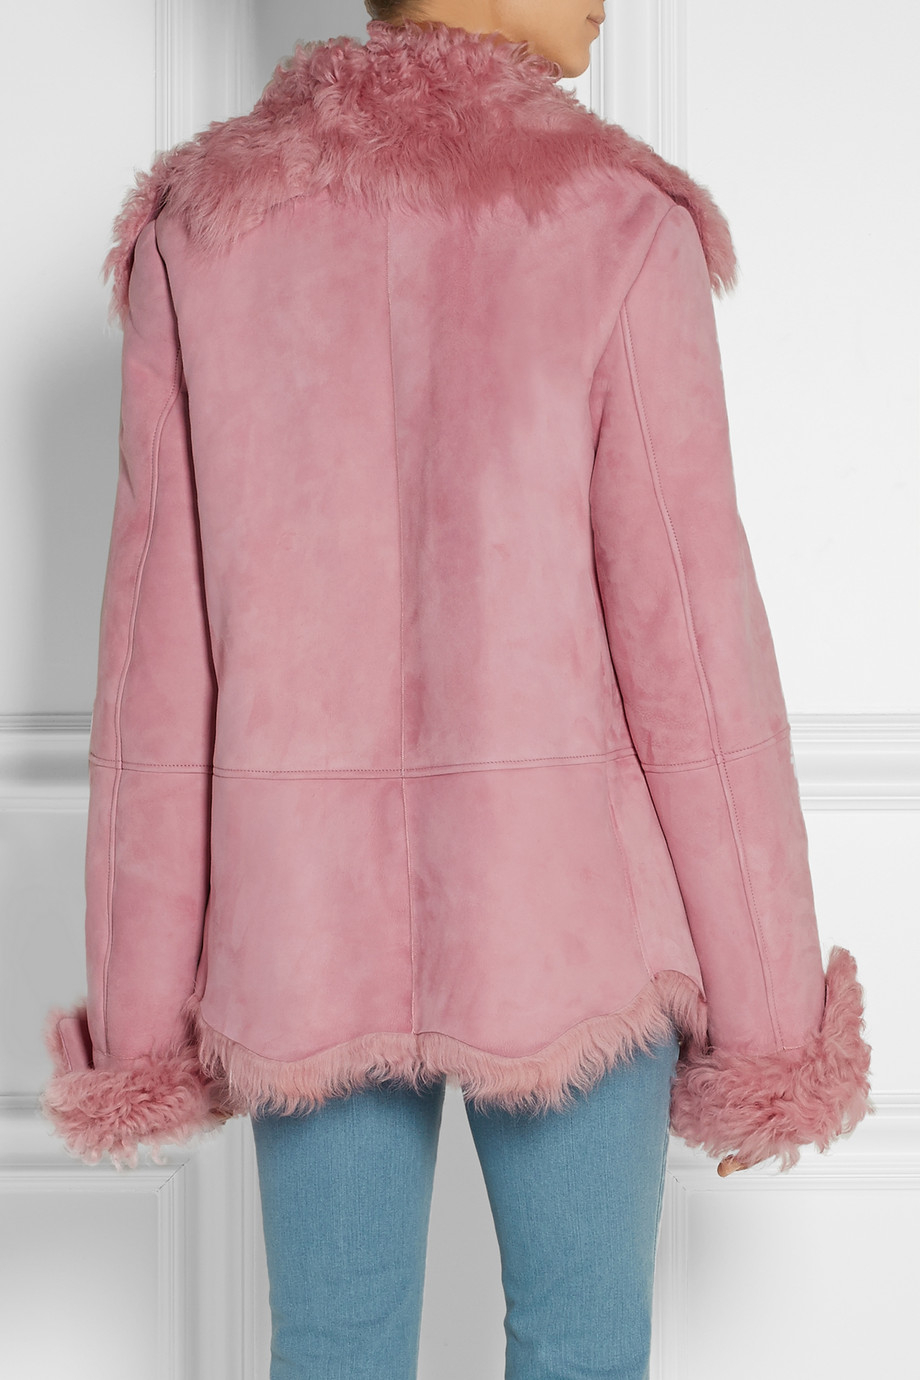 Michael kors Shearling Coat in Pink | Lyst